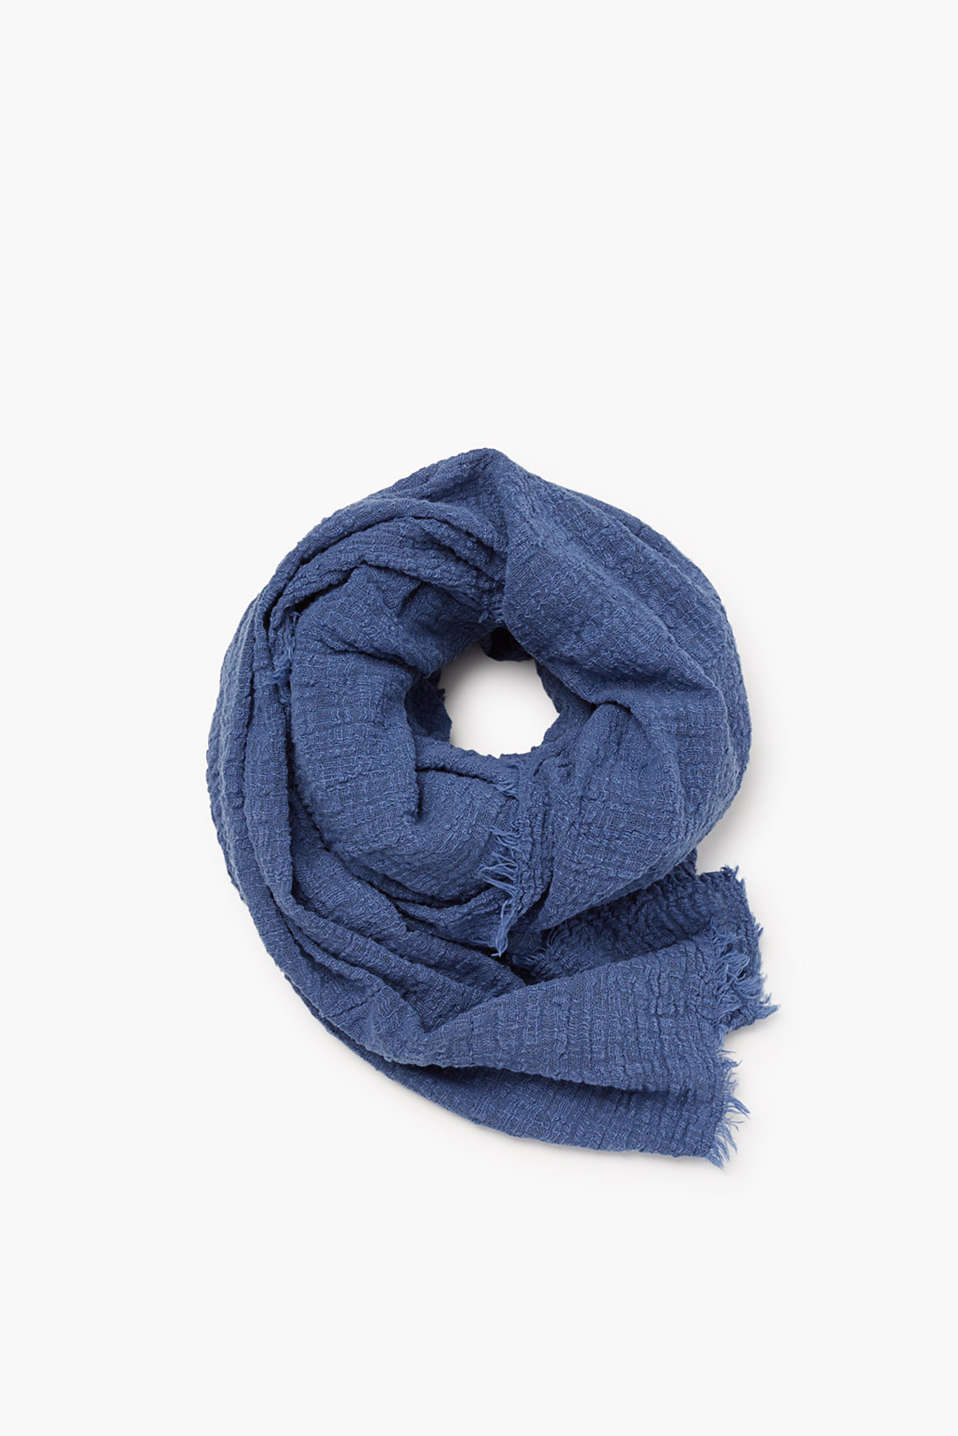 Soft scarf in pure cotton with a brushed, woven texture